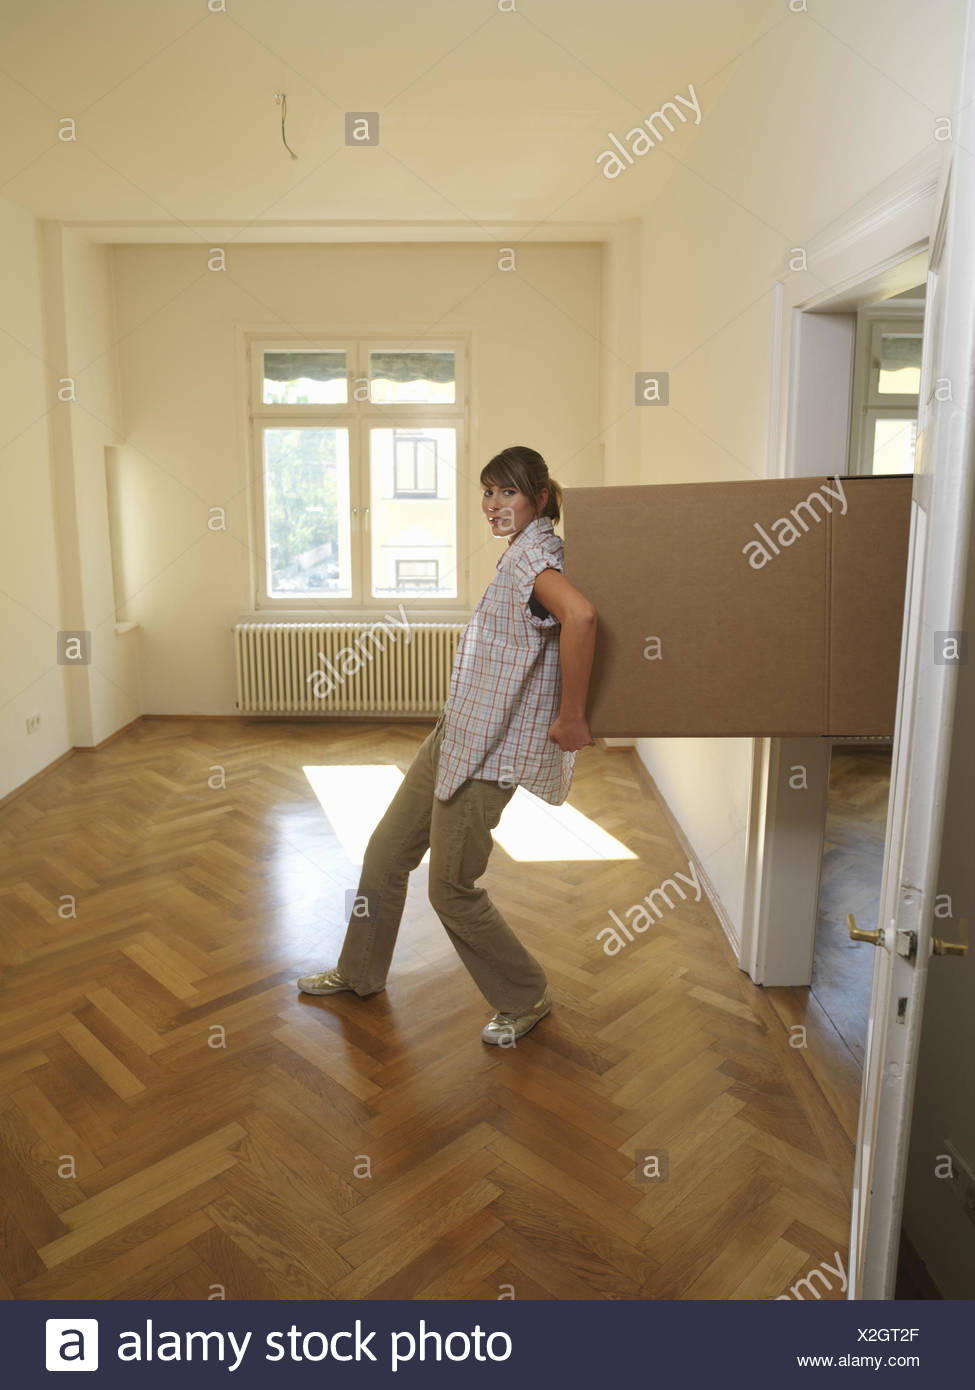 Blank Frau Jung Prozession Pappe Carry Wohnung Zimmer Flache